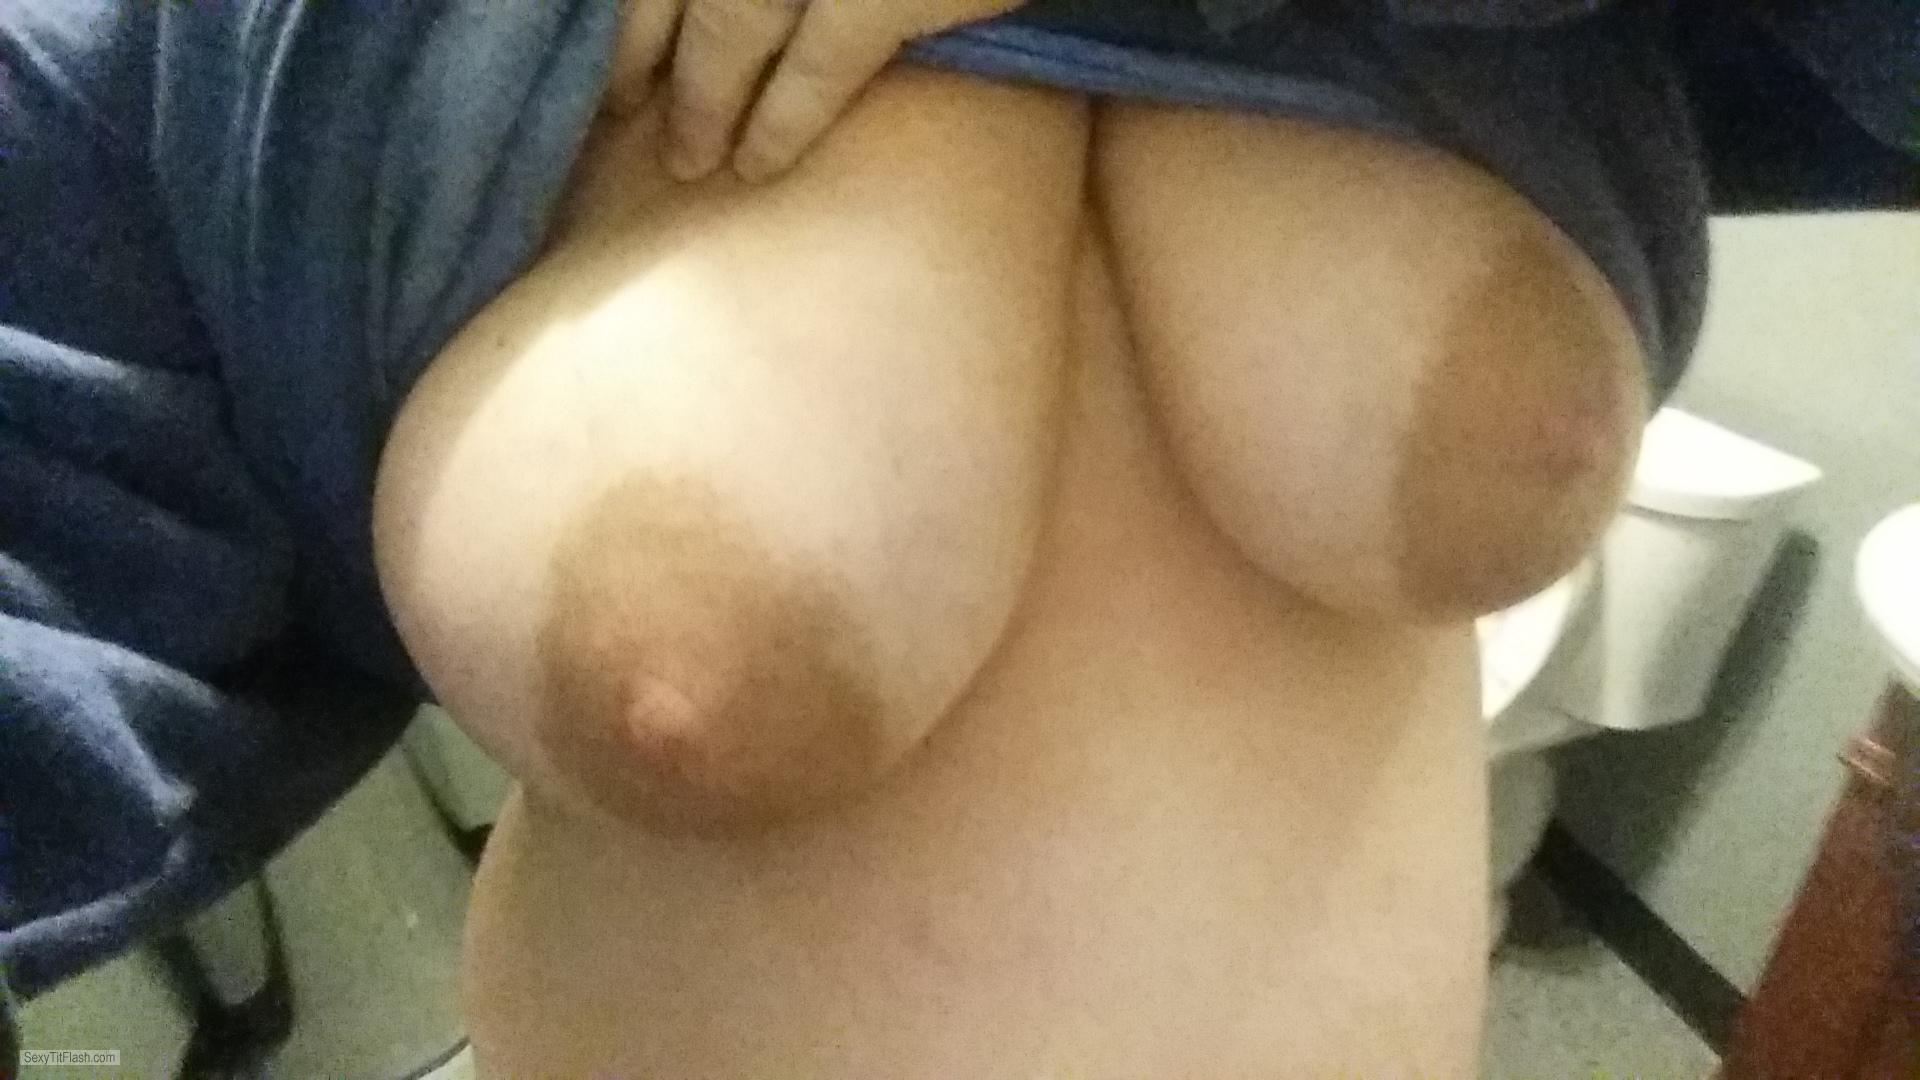 My Big Tits Selfie by Southbelle